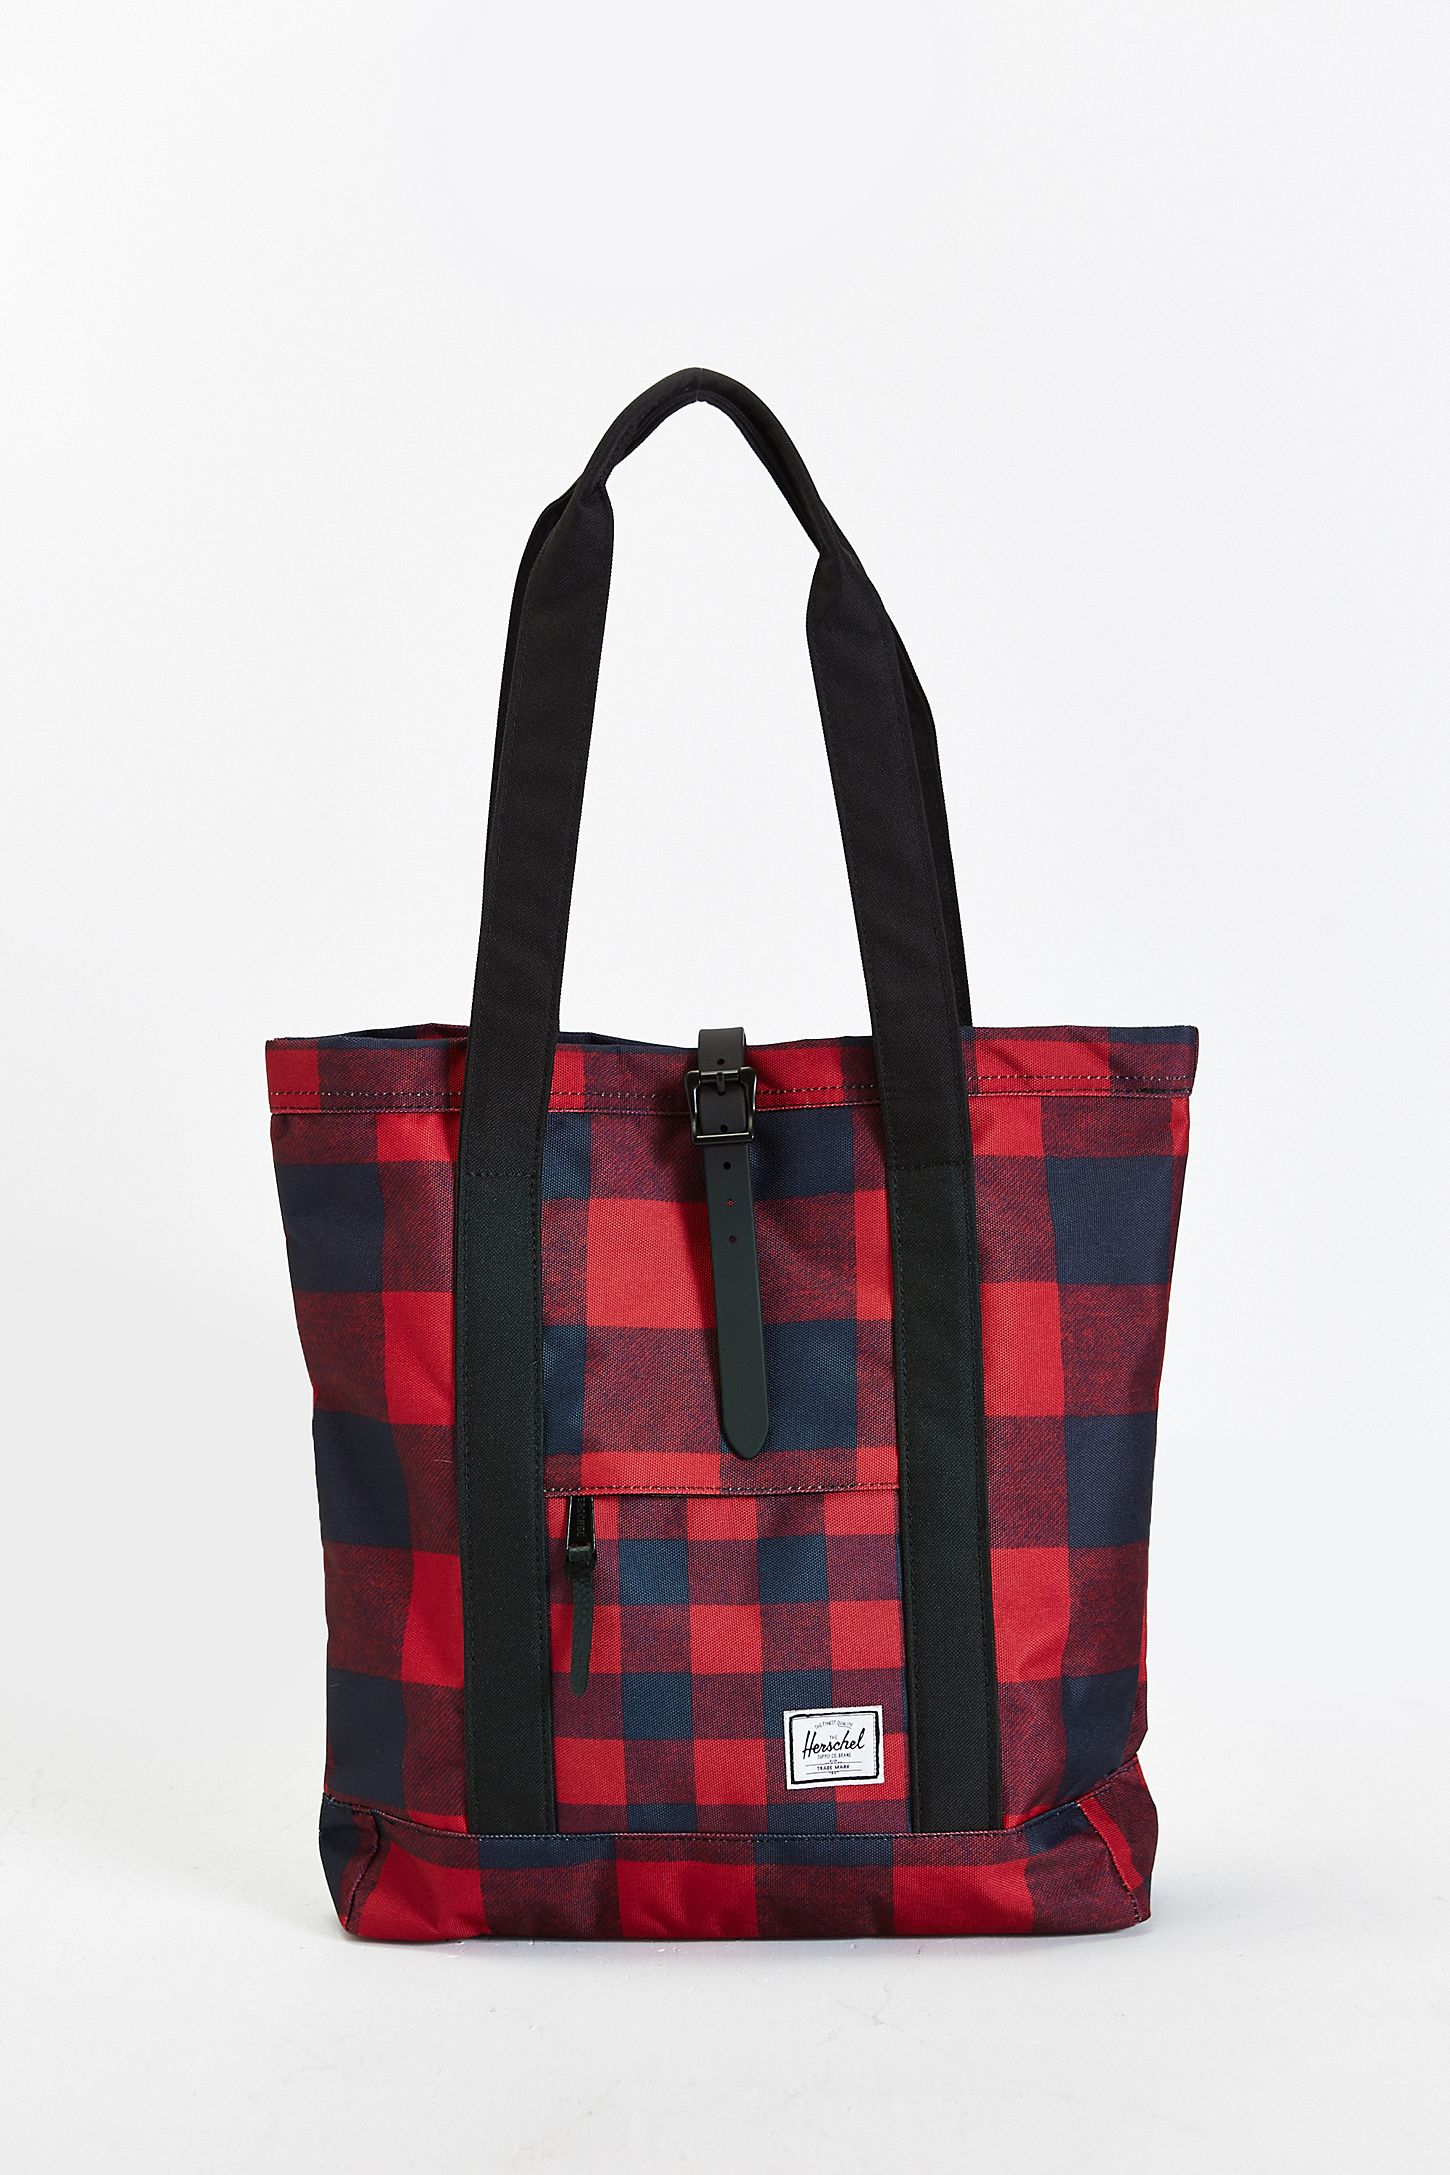 8a6520f6d70 Herschel Supply Co. Buffalo Plaid Market Tote Bag   Urban Outfitters ...